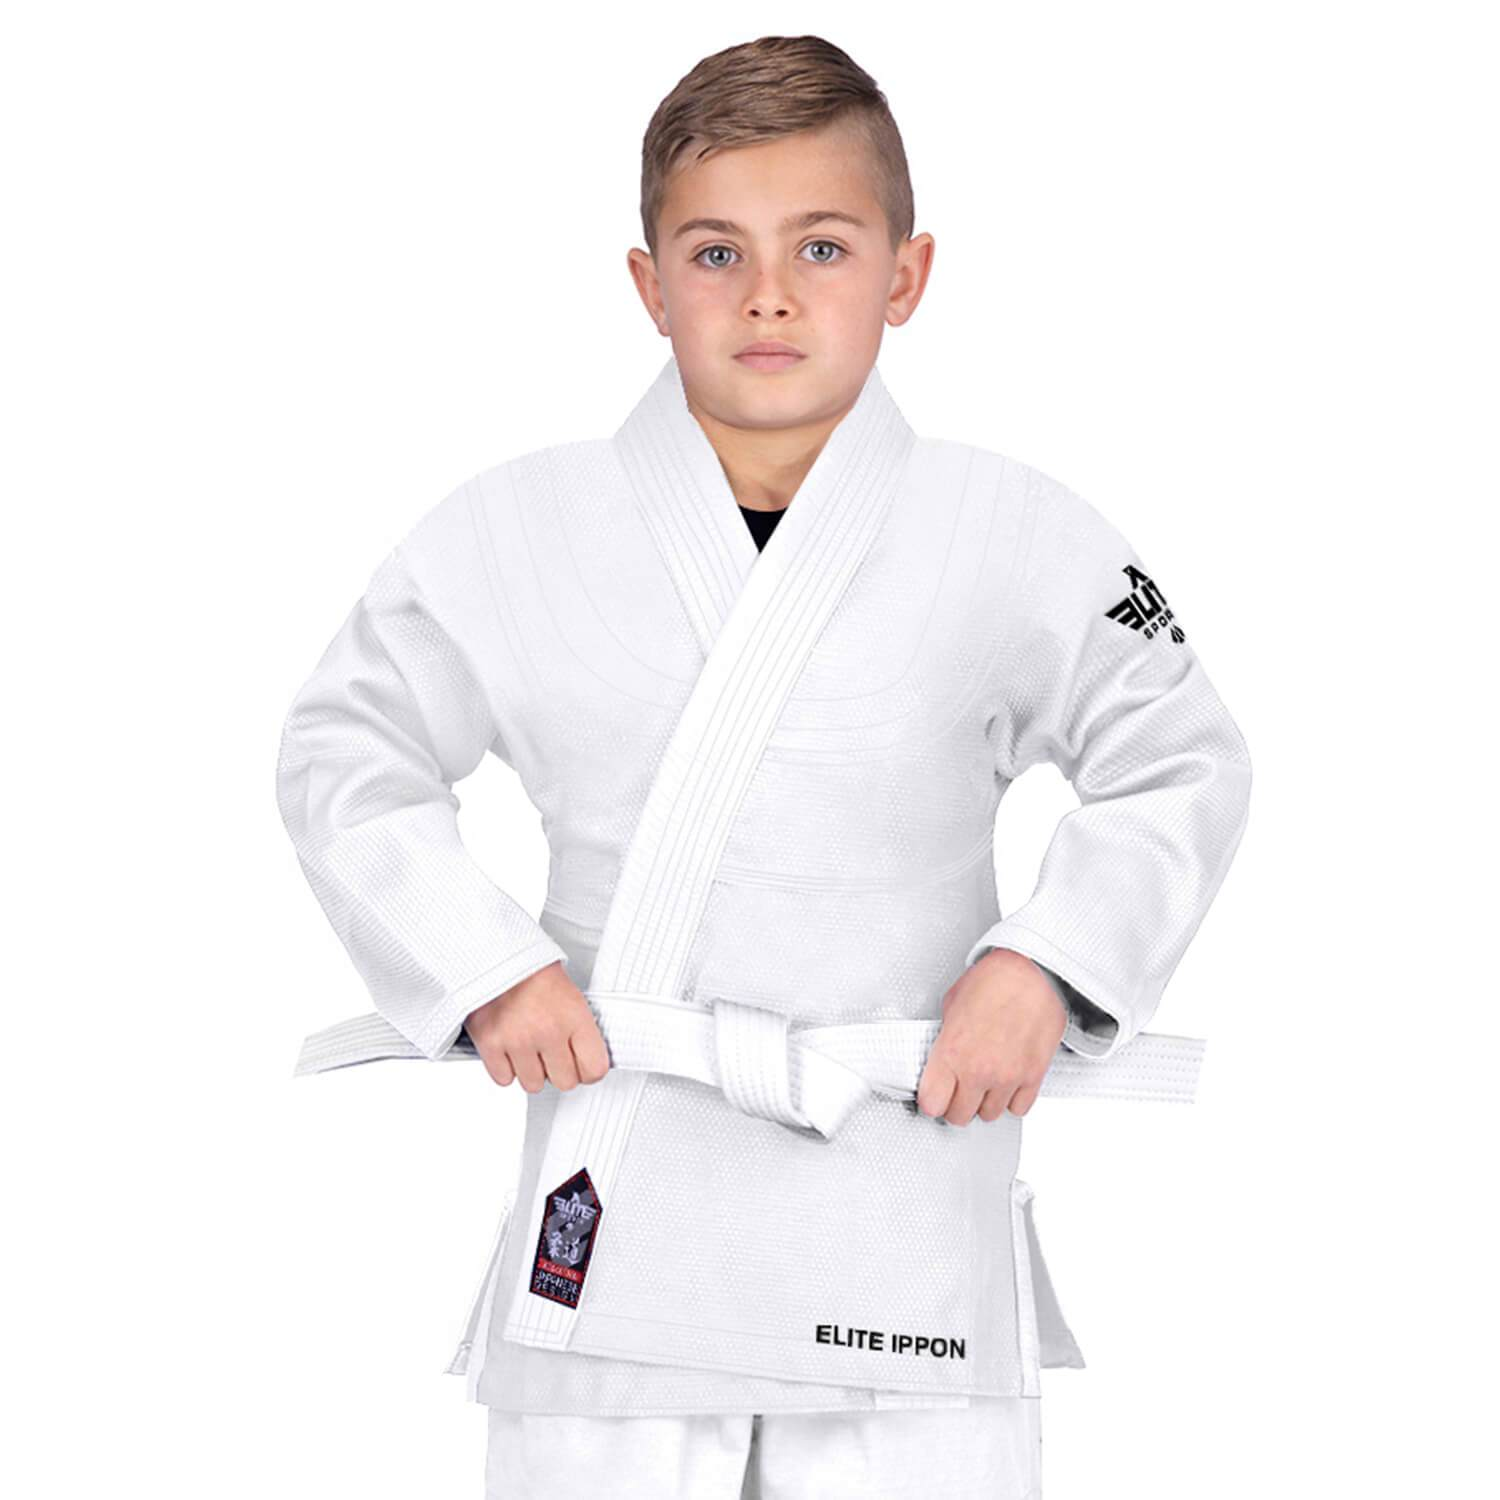 Elite Sports Ultra Light Preshrunk White Kids Judo Gi